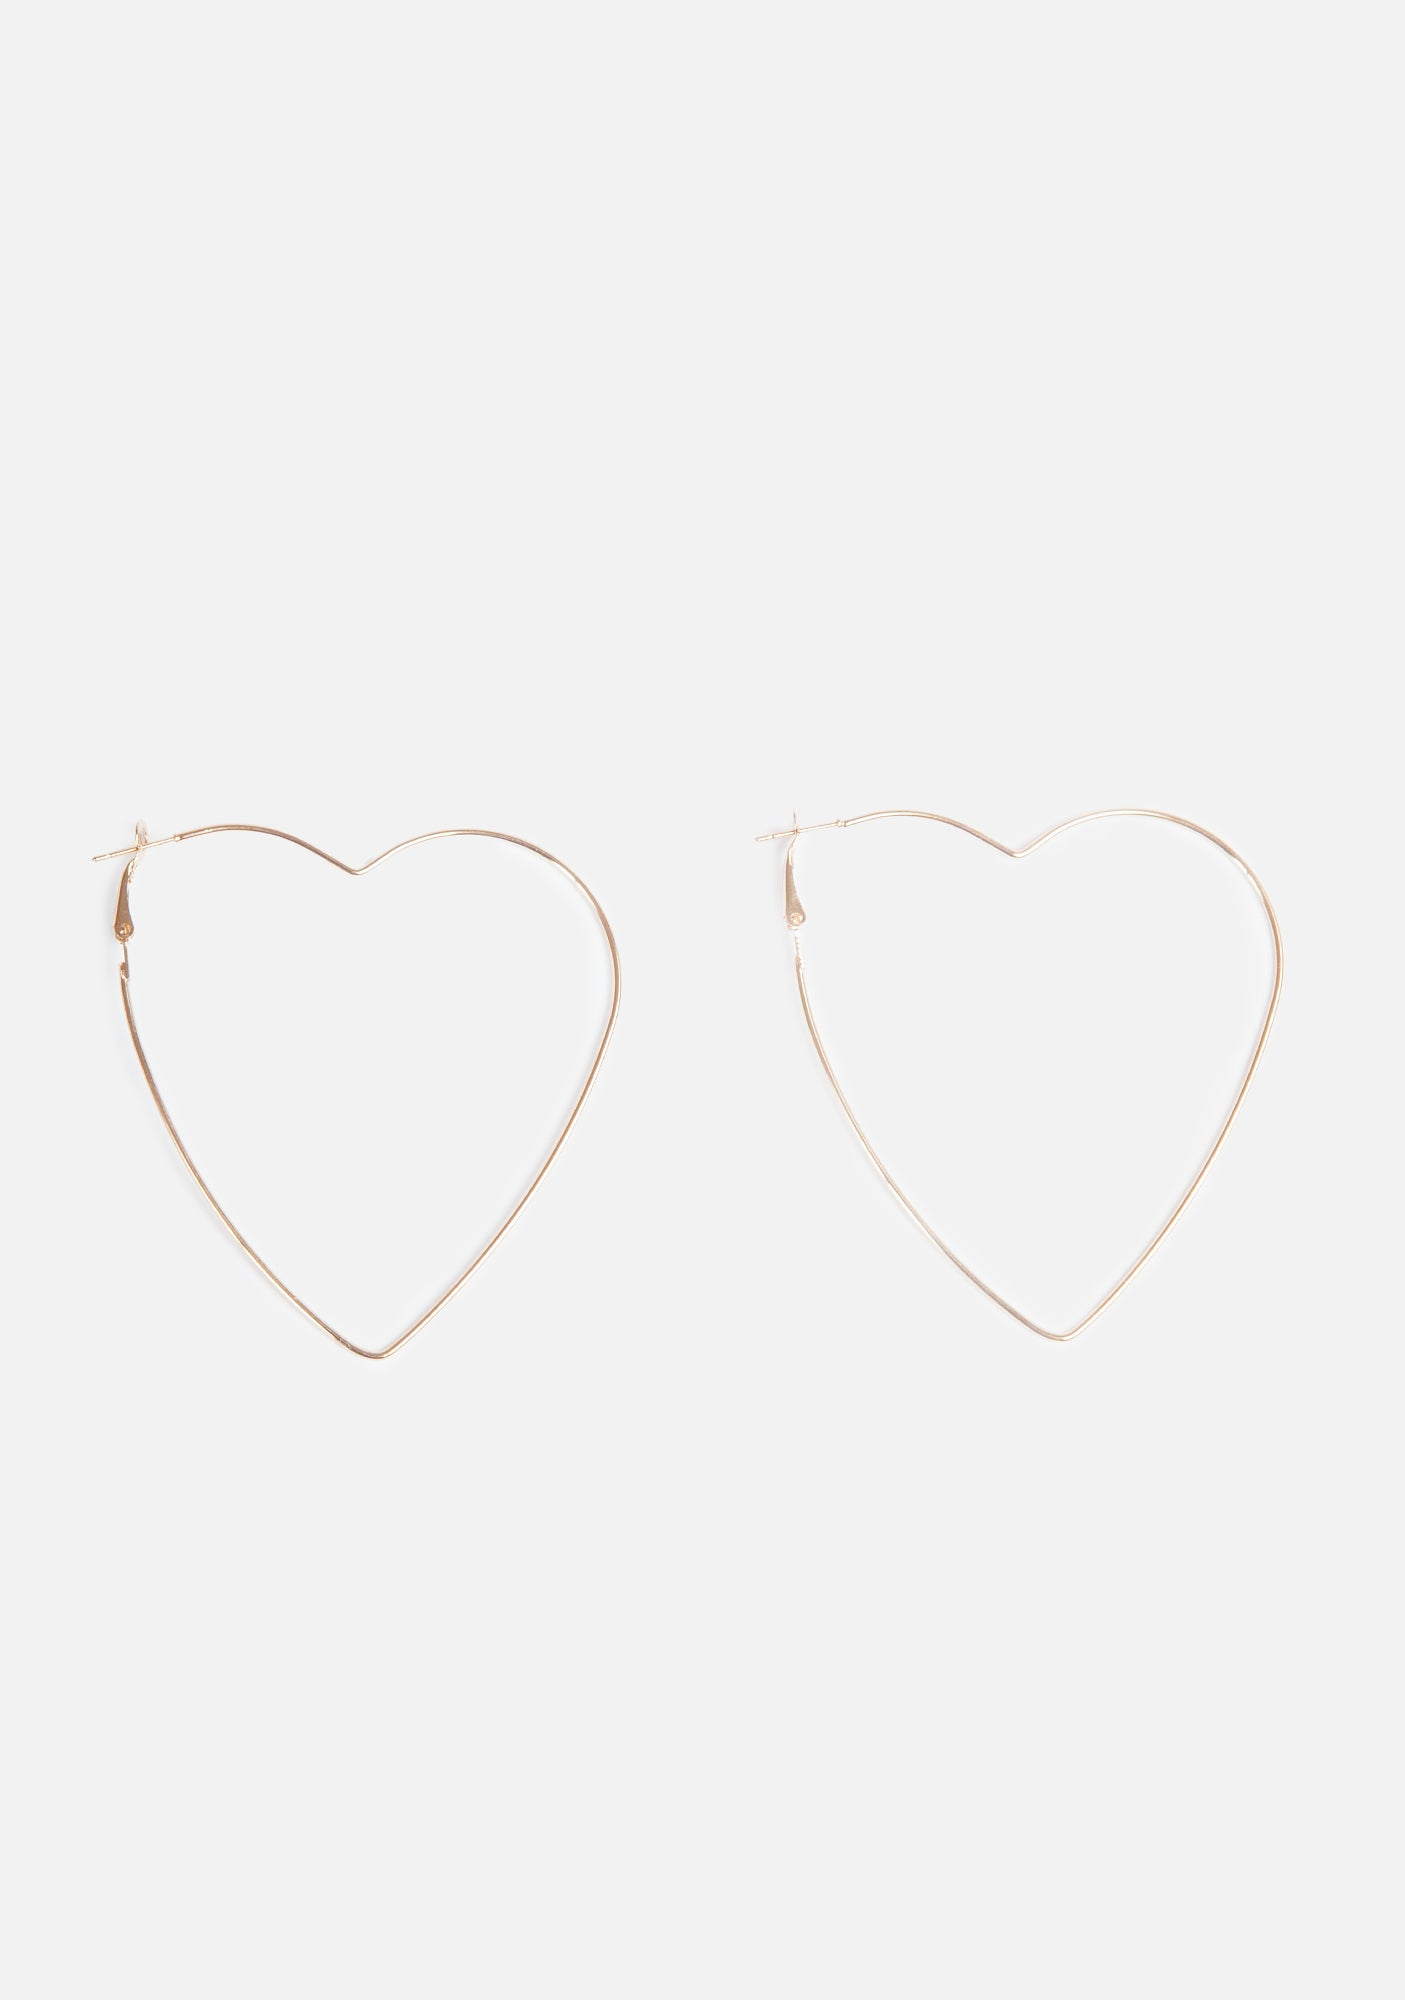 I Heart U Hoop Earrings (2 Colors)